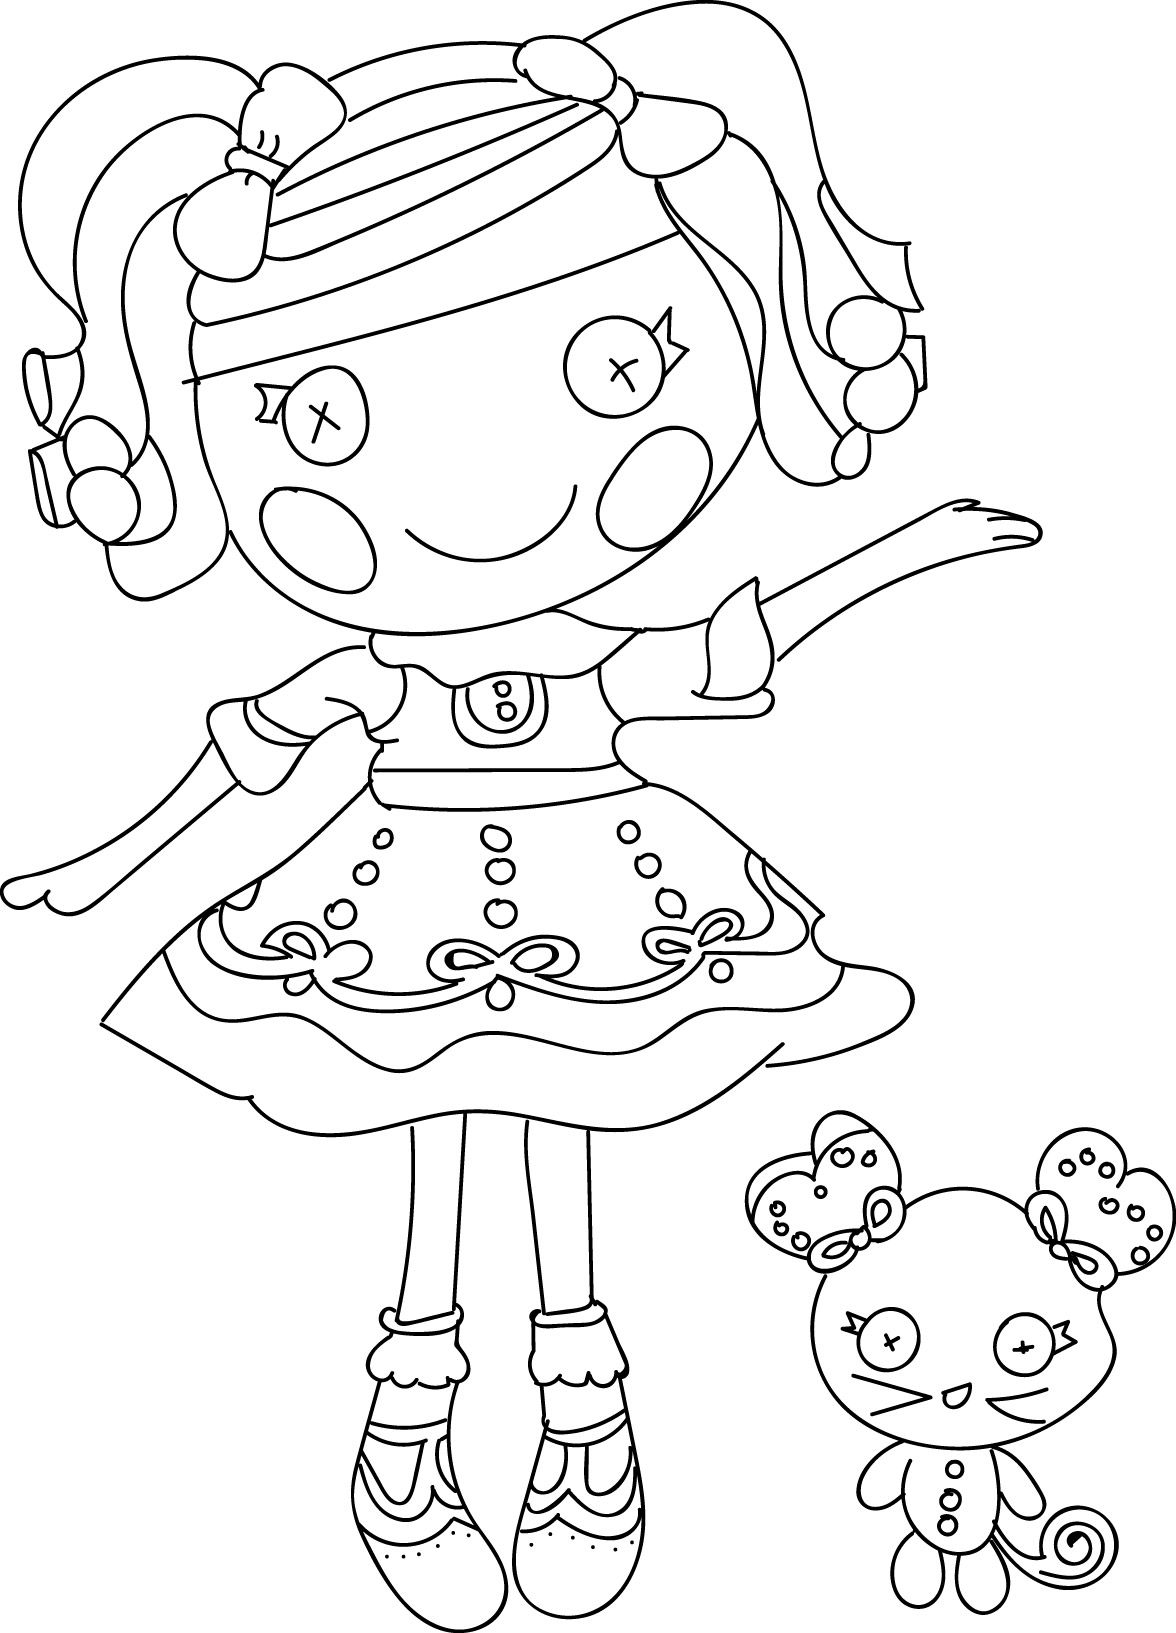 nice Lalaloopsy Cartoon Coloring Pages Check more at http